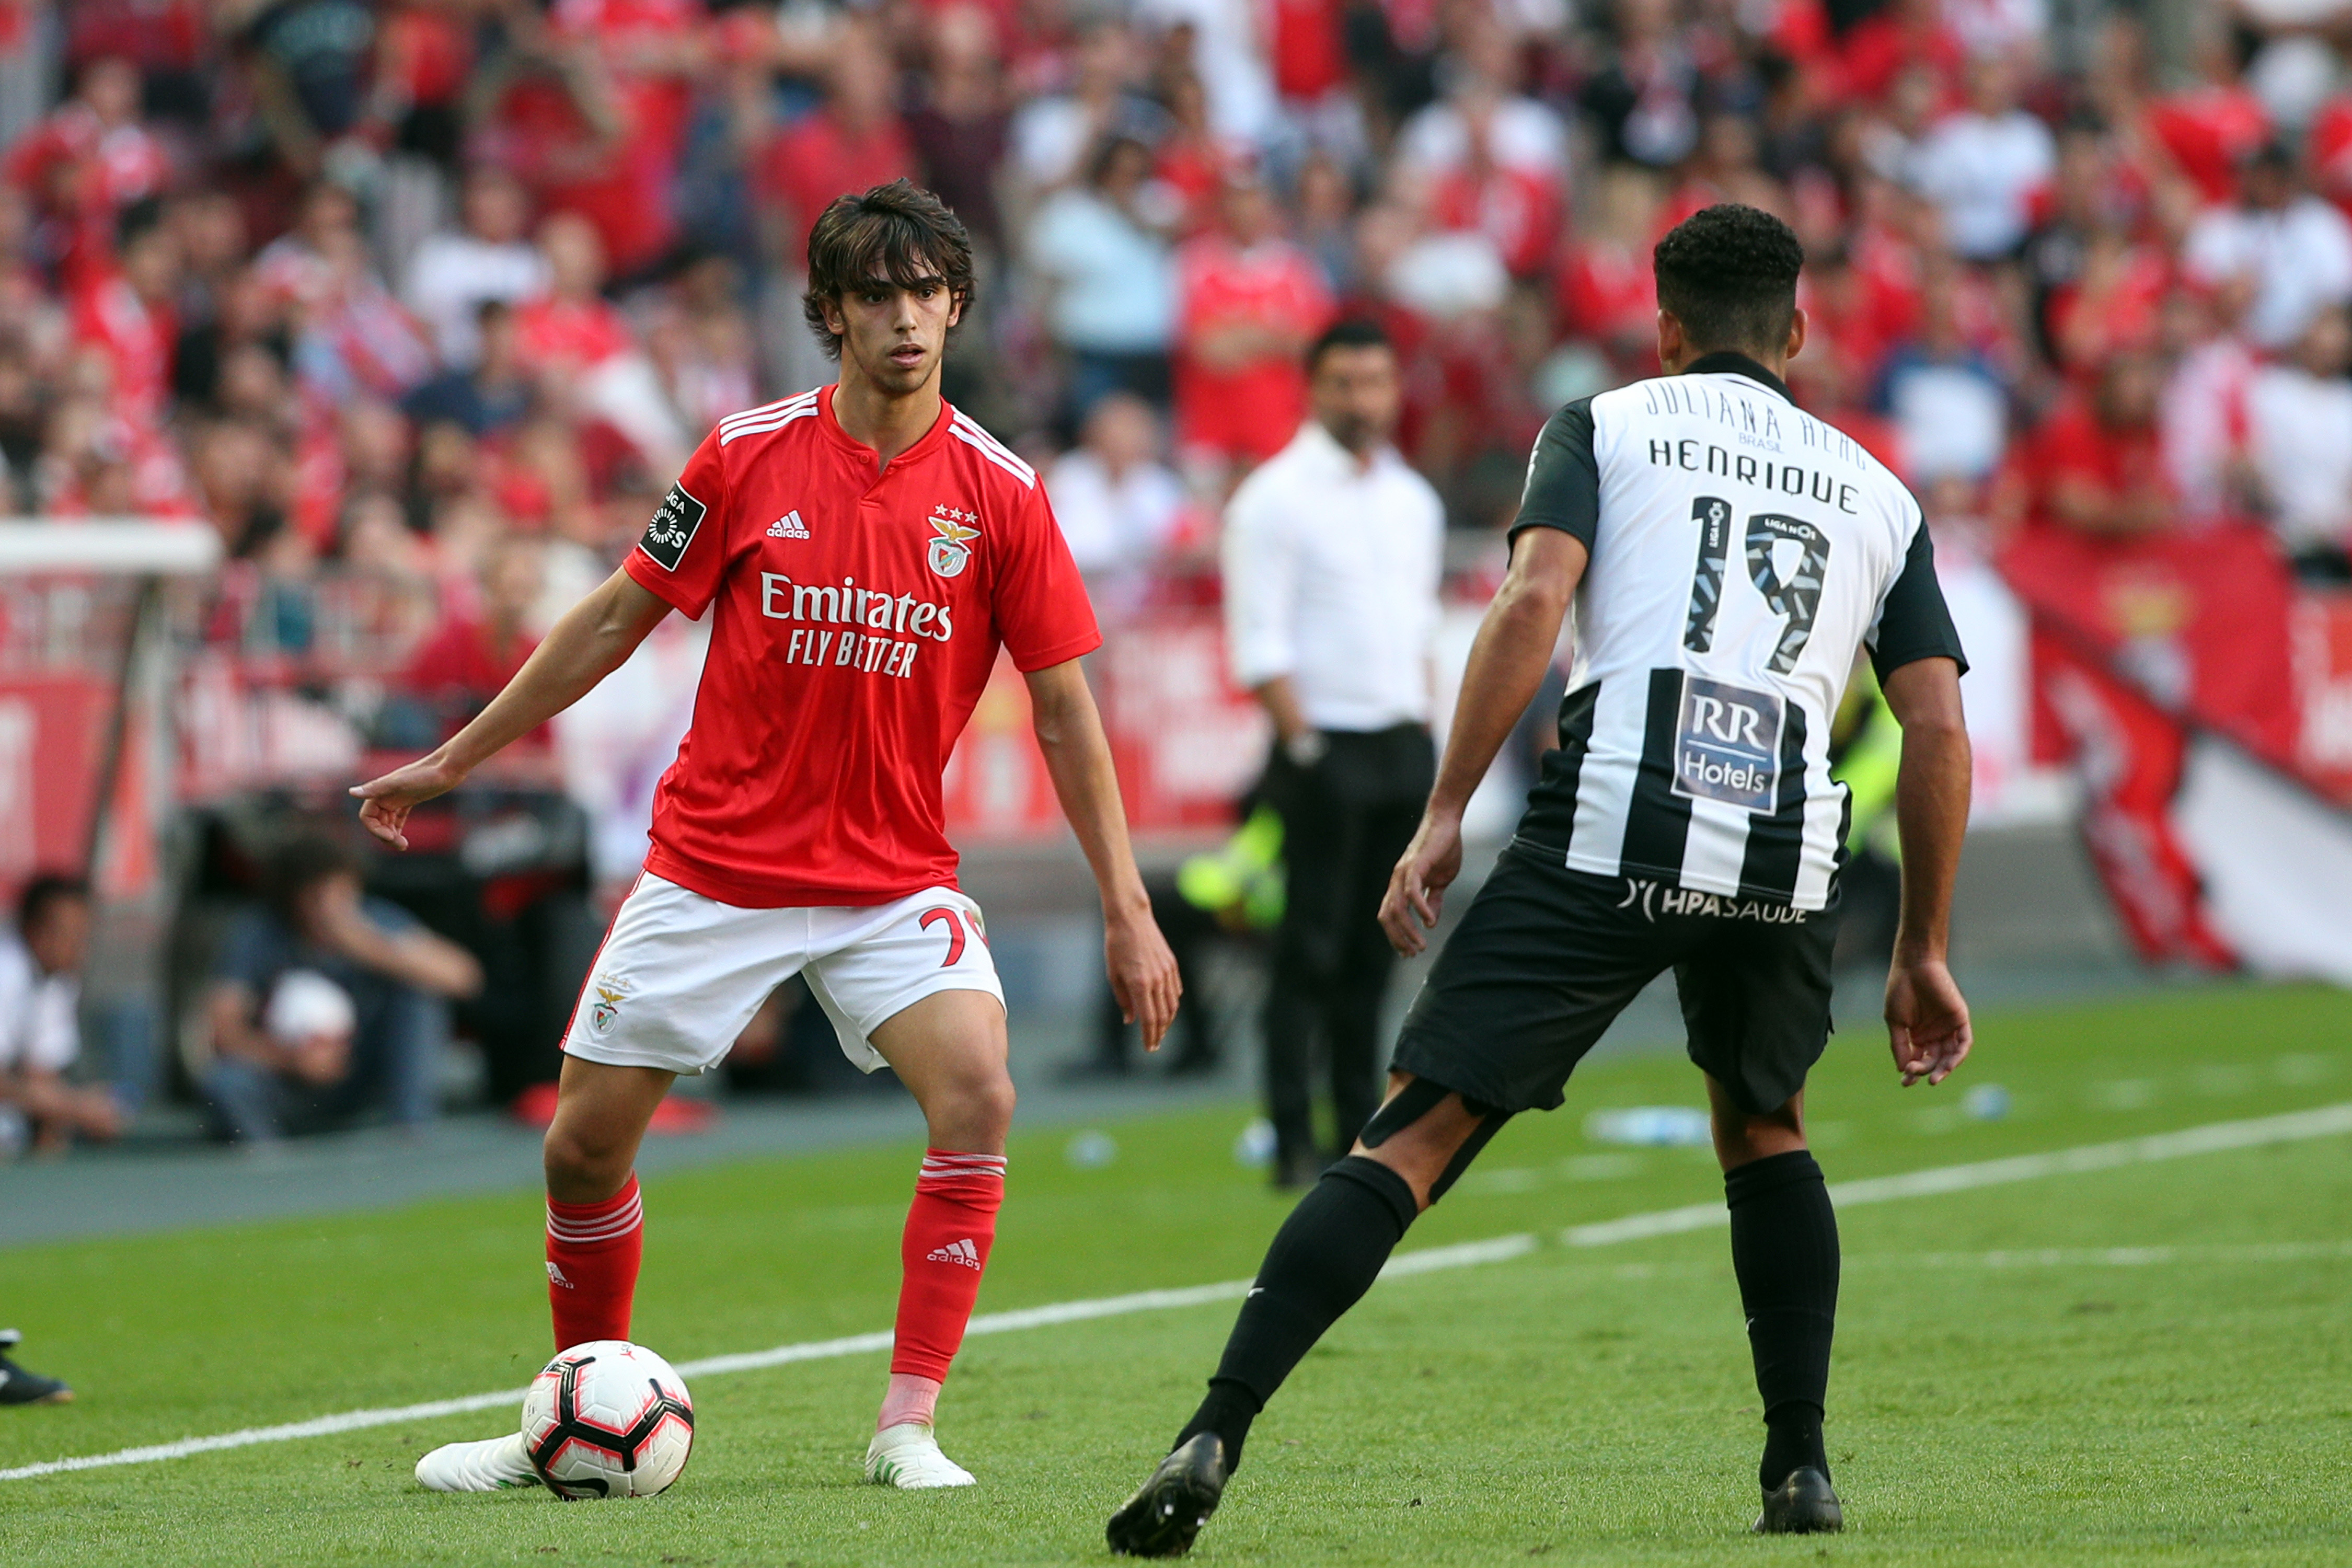 Benfica's Joao Felix remains coy about his future amid transfer links